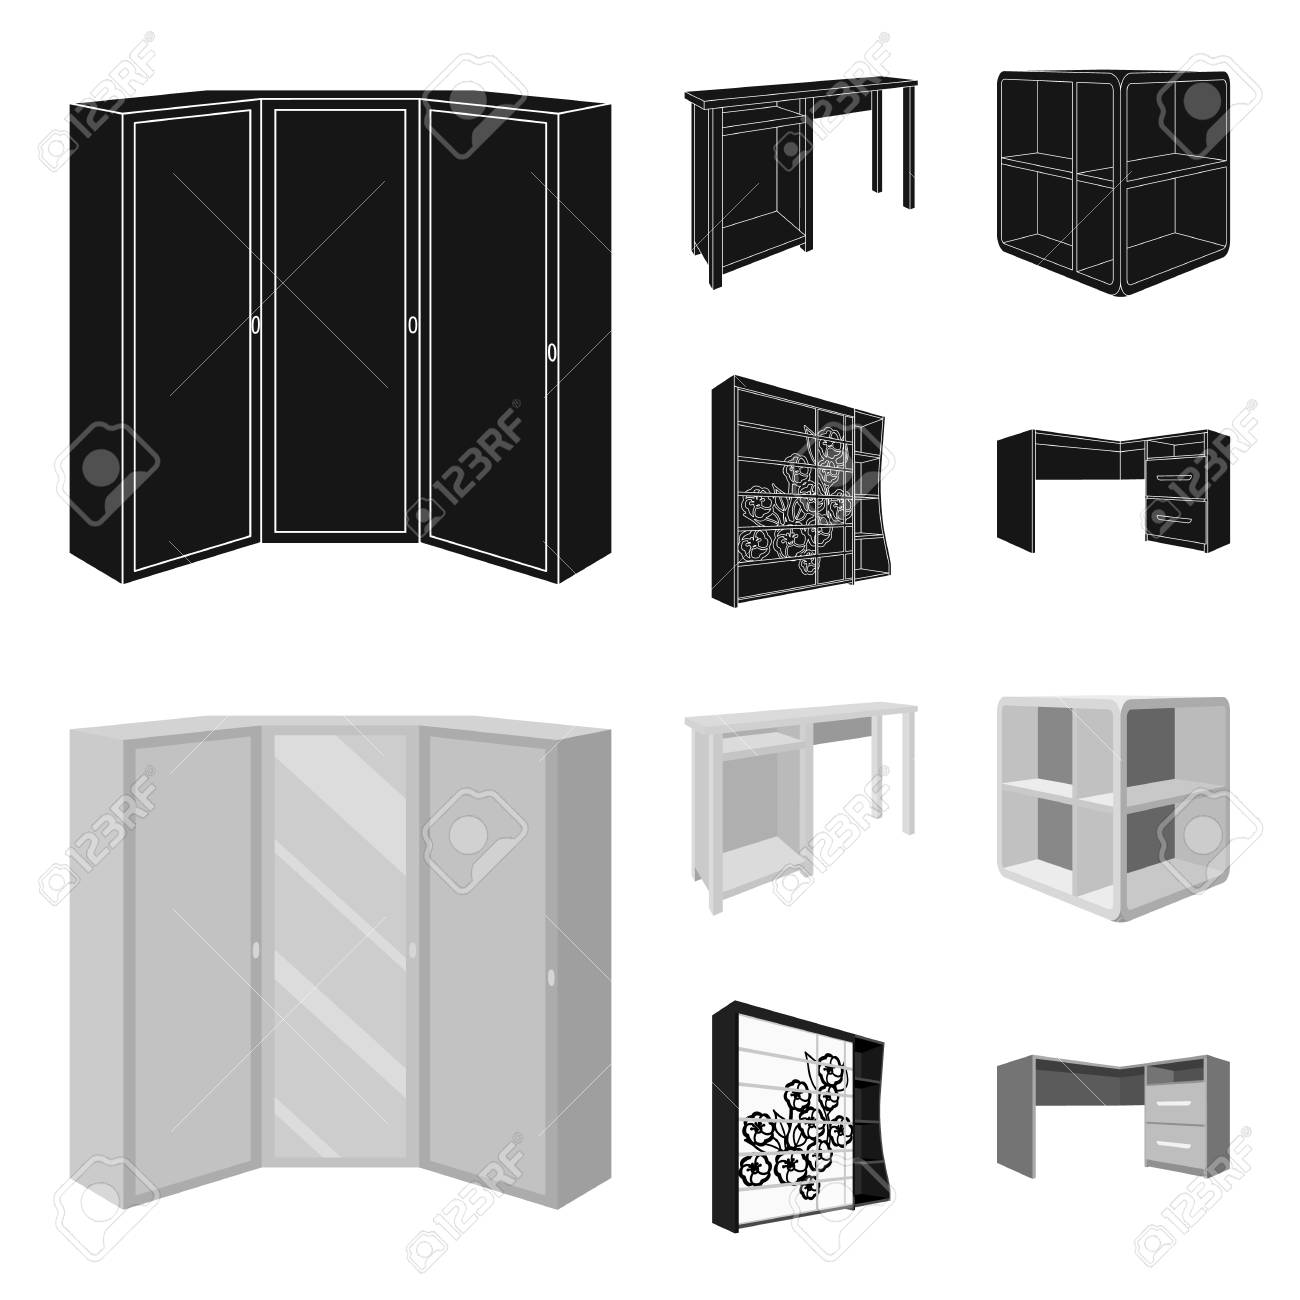 Dressing Table Corner Shelves Computer Desk Wardrobe With Royalty Free Cliparts Vectors And Stock Illustration Image 106763254